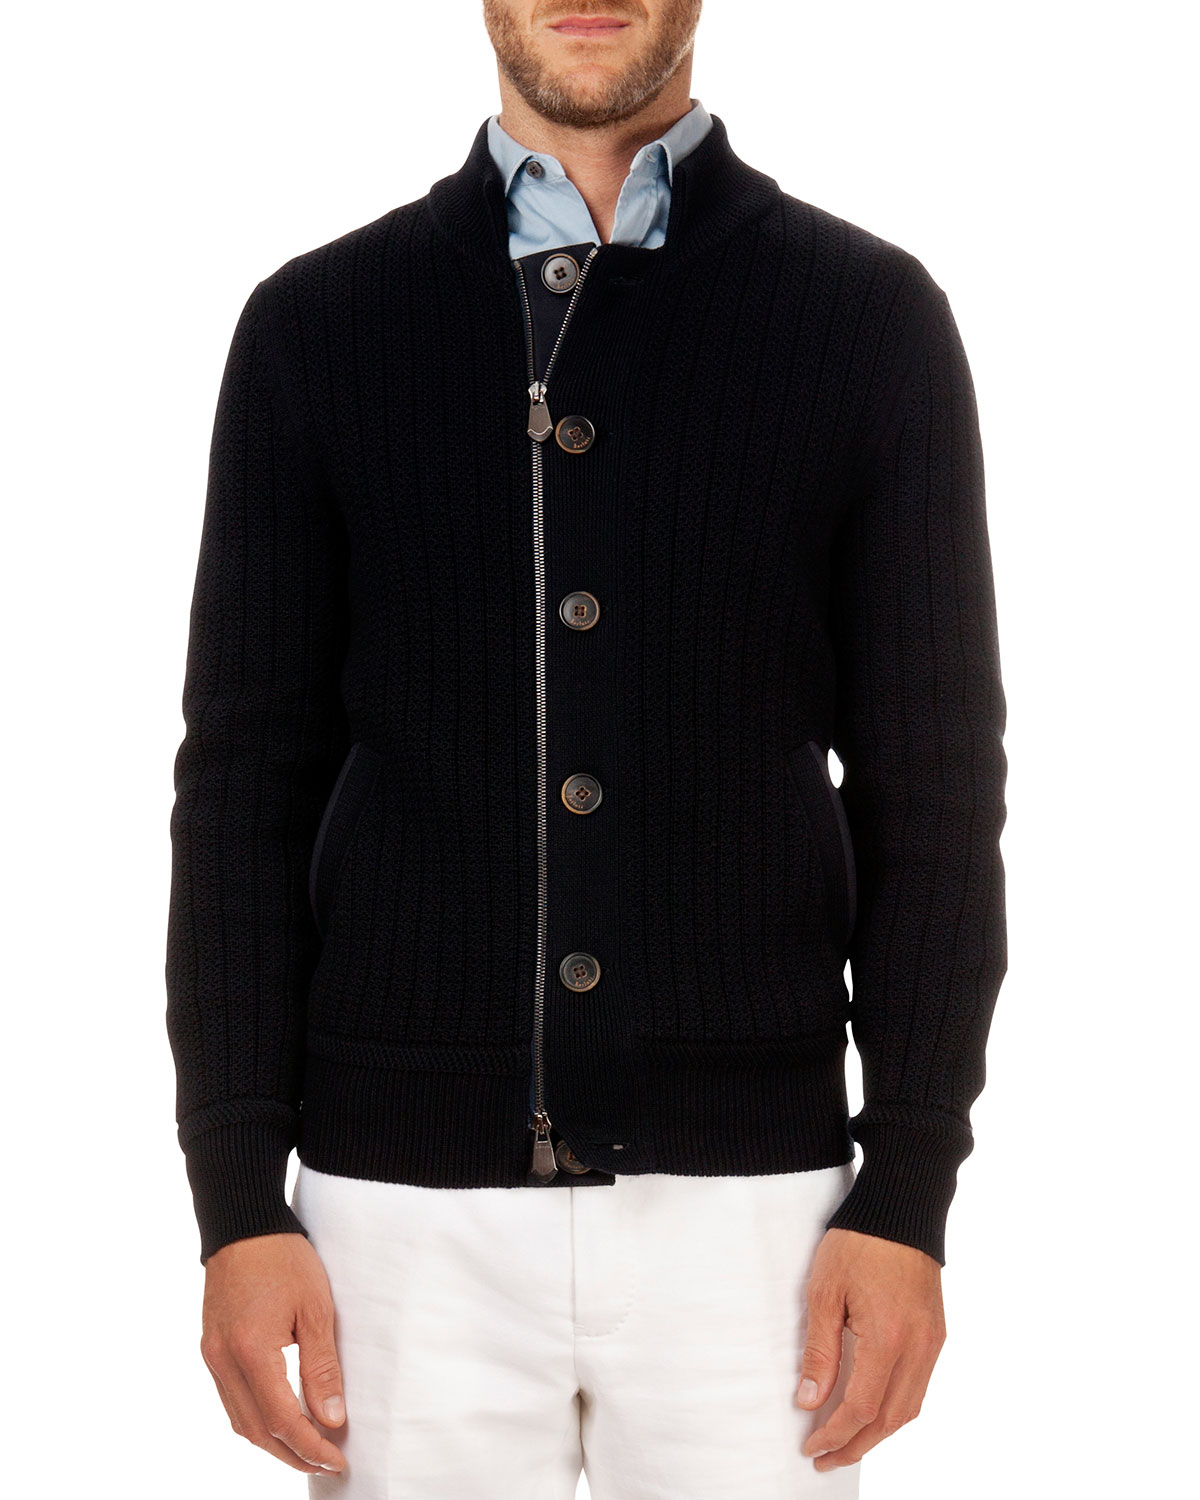 Button/Zip Cardigan, Navy